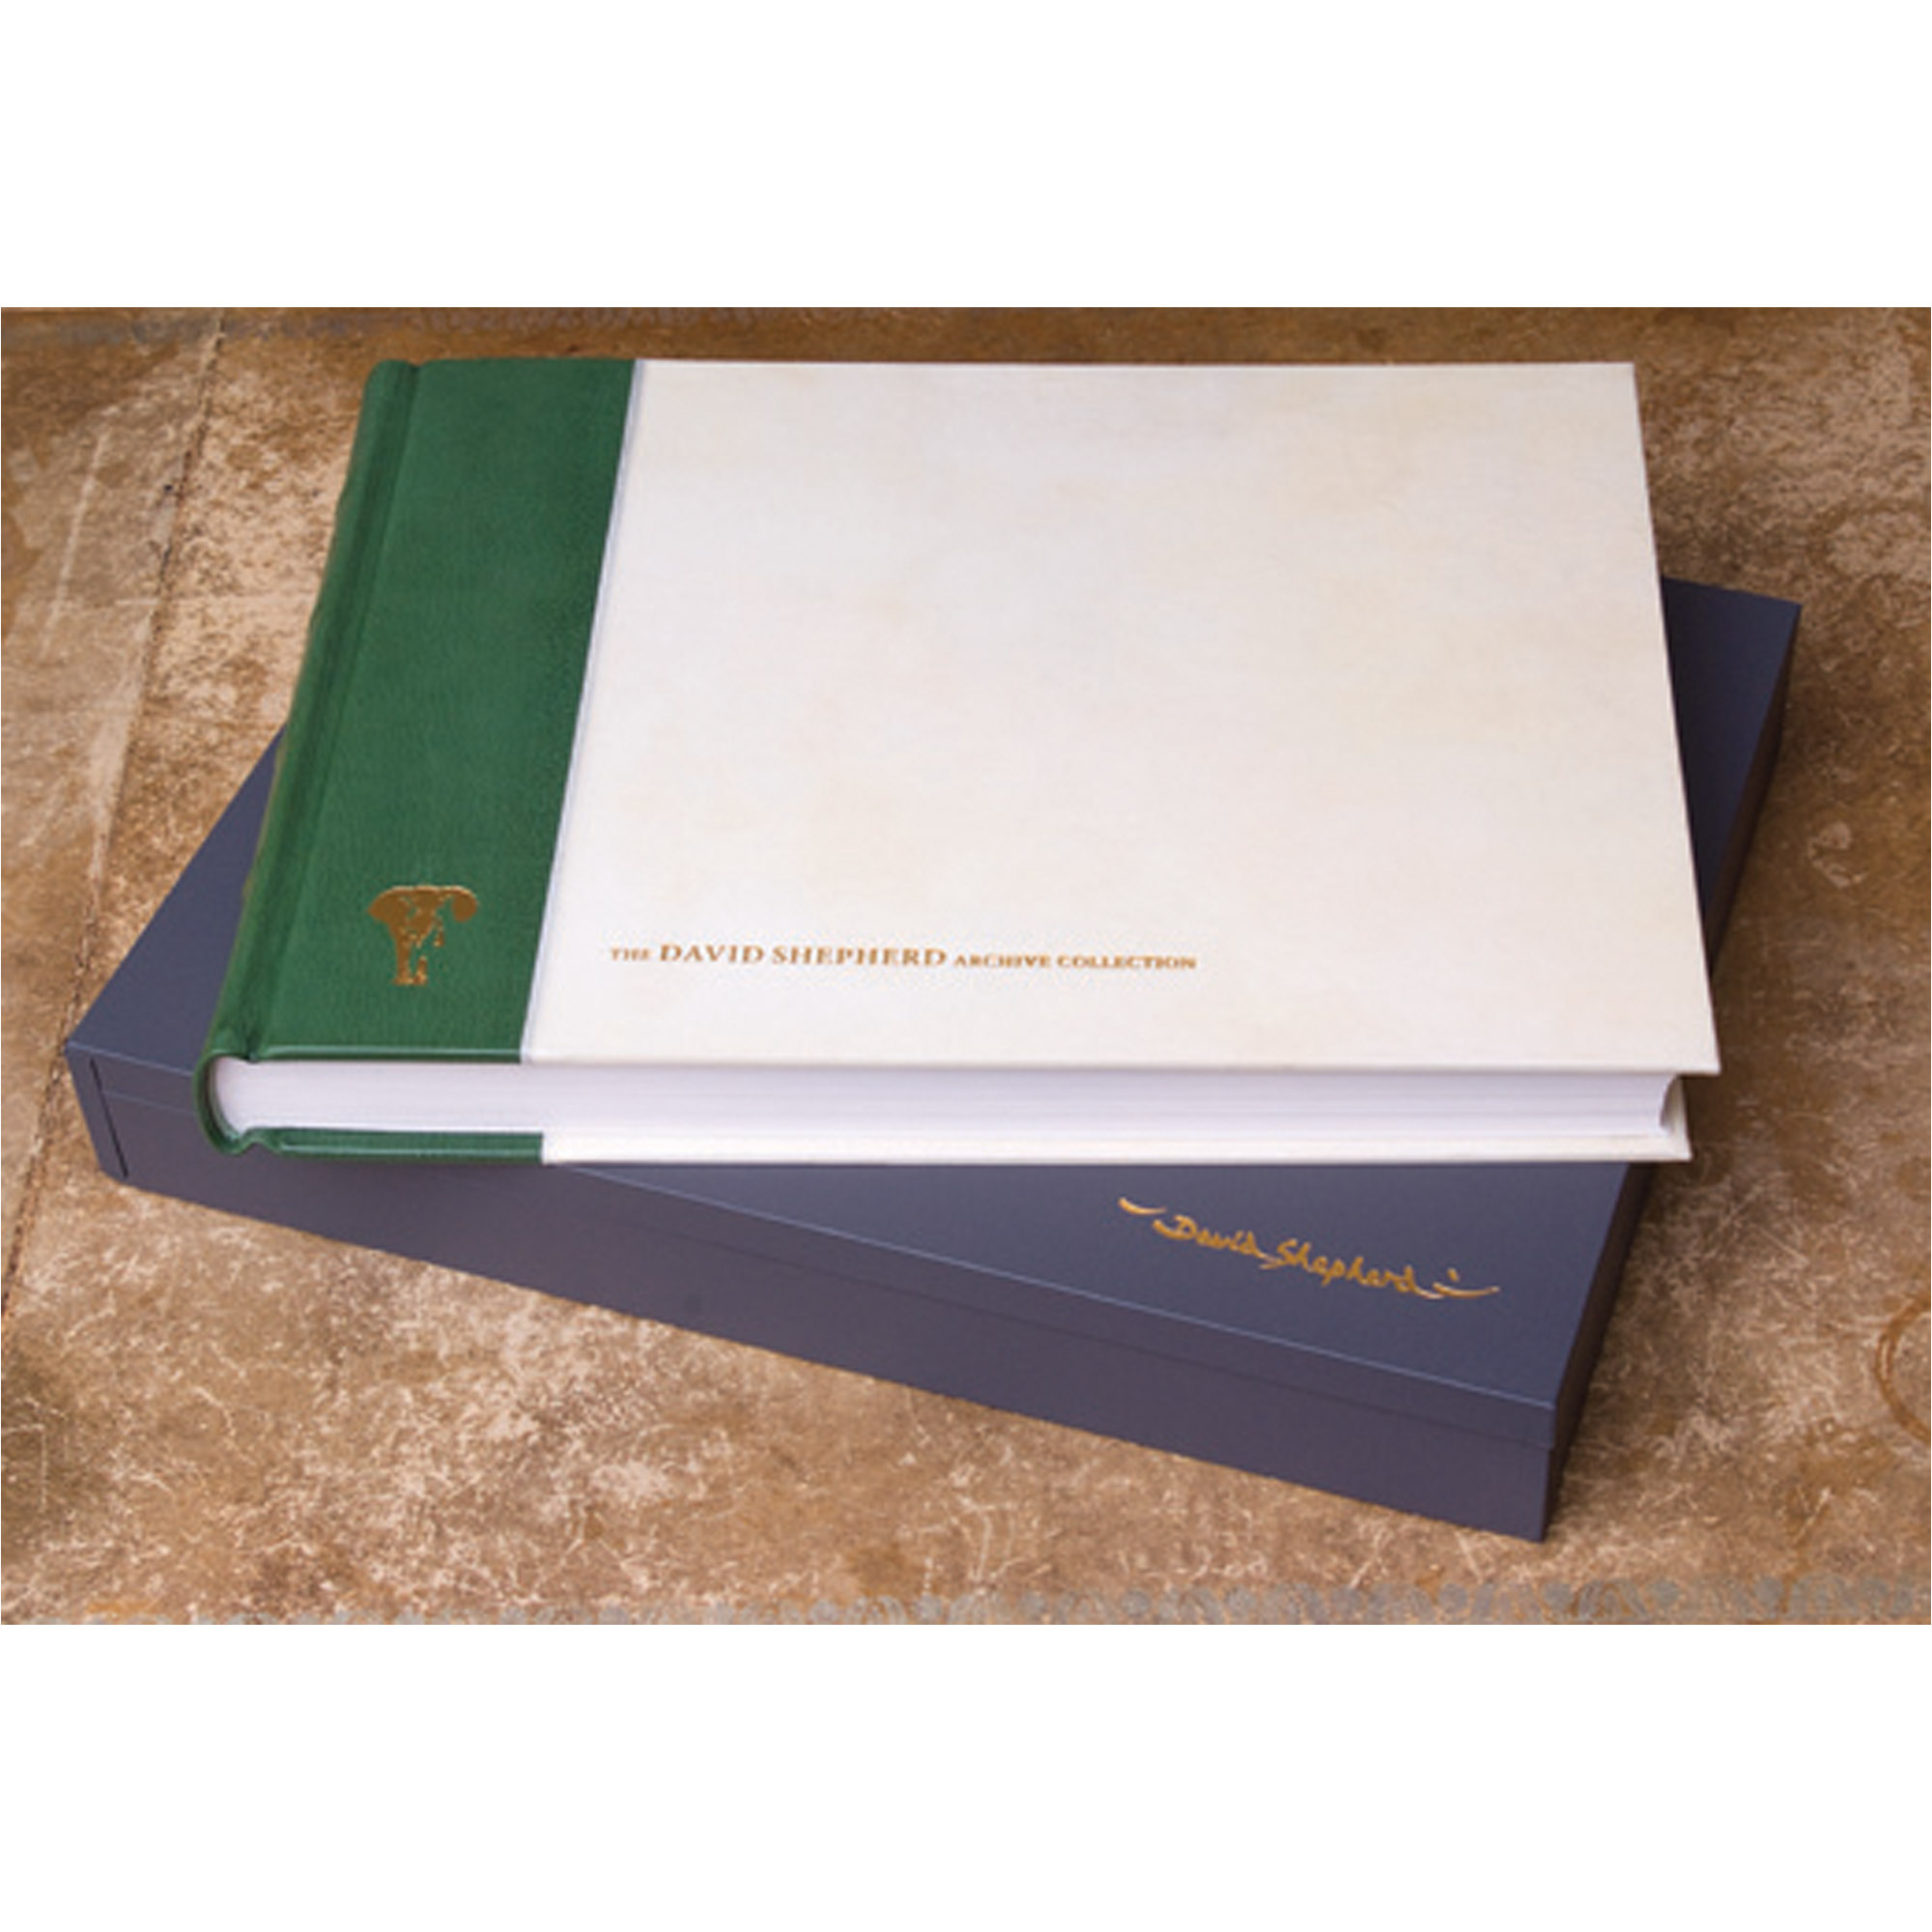 The David Shepherd Archive Collection book & solander box